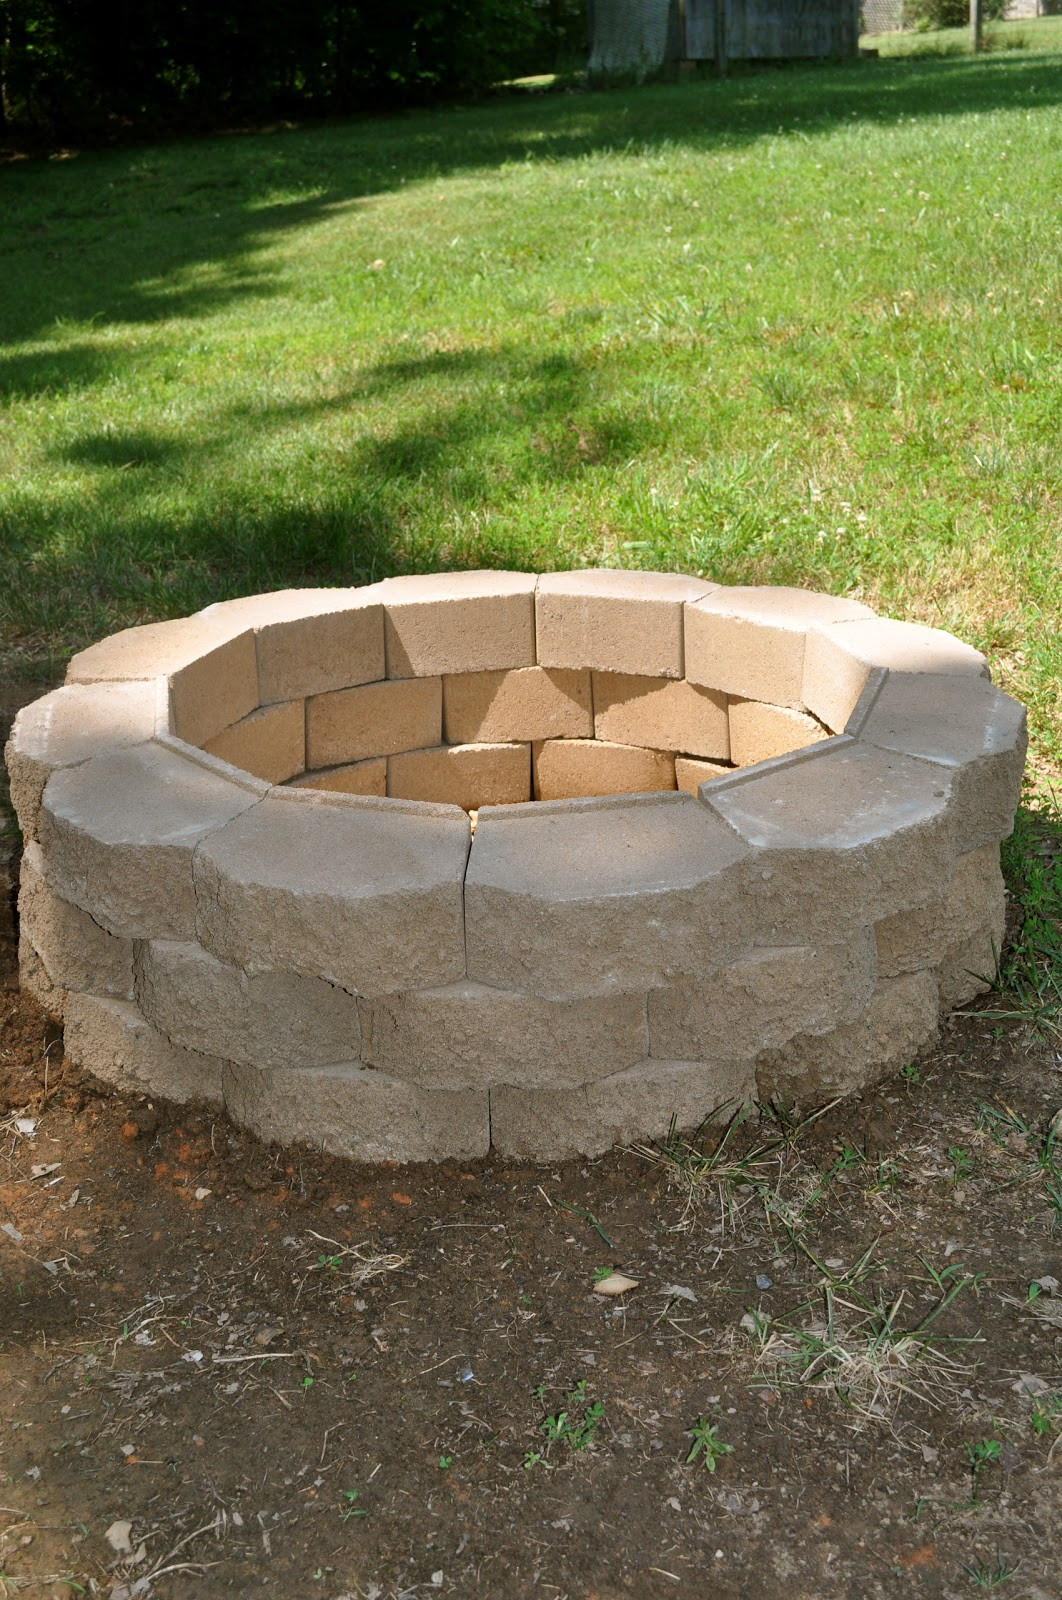 Best ideas about Fire Pits DIY . Save or Pin Salty Tales DIY Fire Pit Now.